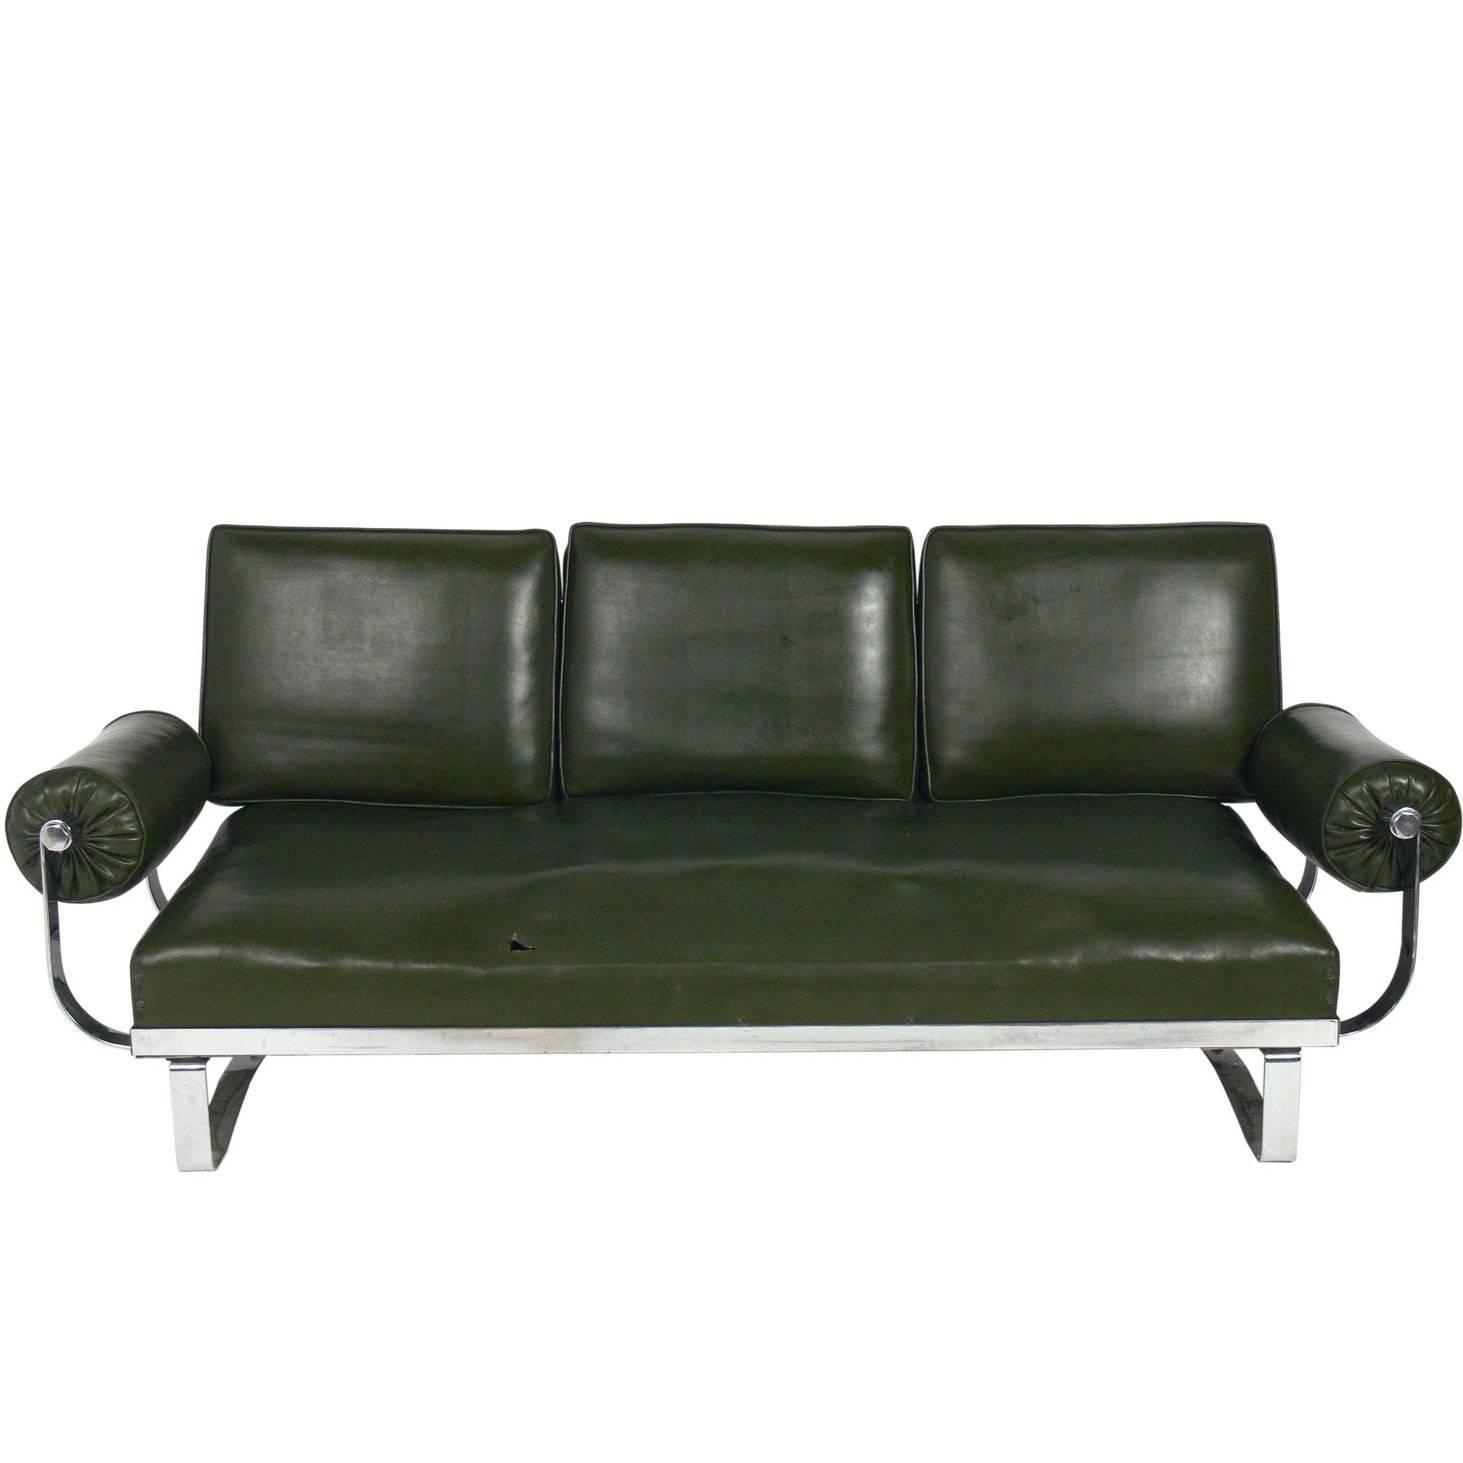 Fancy Art Deco Sofa 43 With Additional Modern Sofa Ideas With Art Intended For Art Deco Sofas (Image 6 of 10)